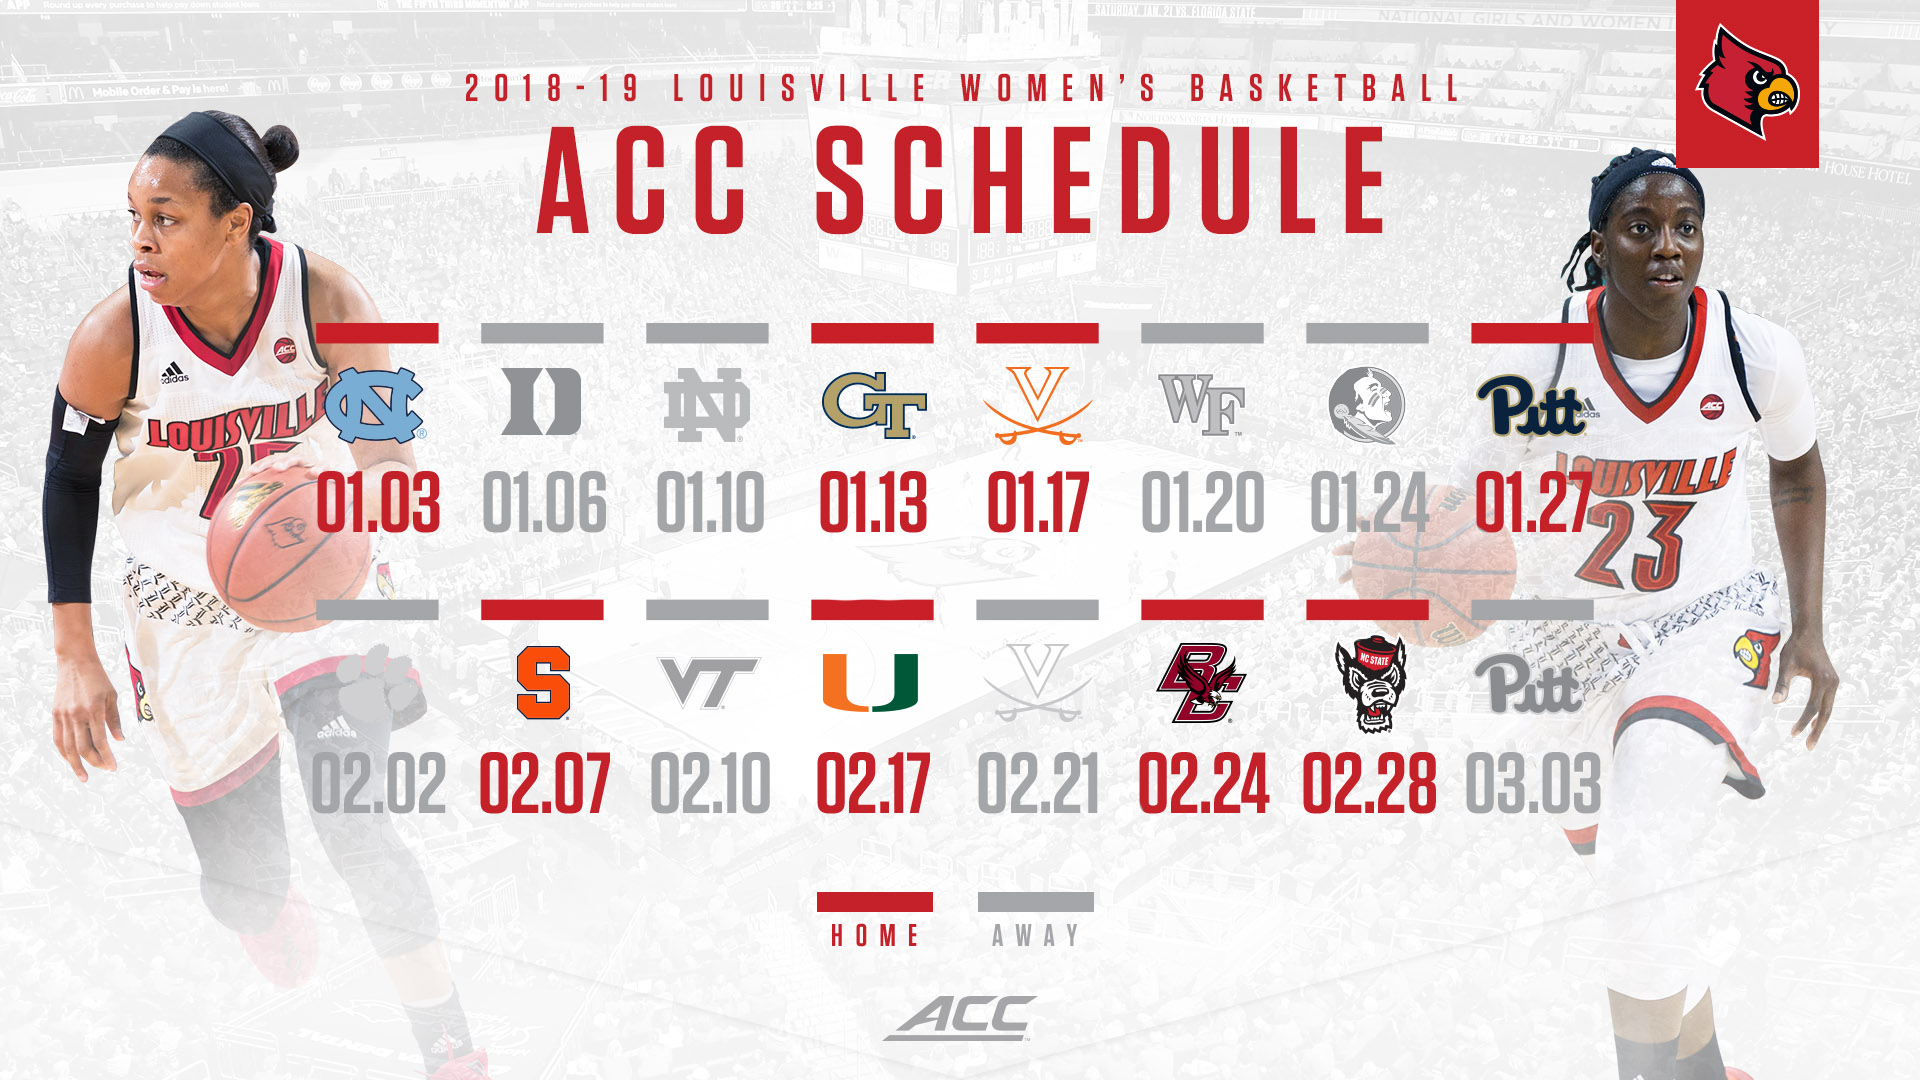 2018-19 conference schedule released - university of louisville